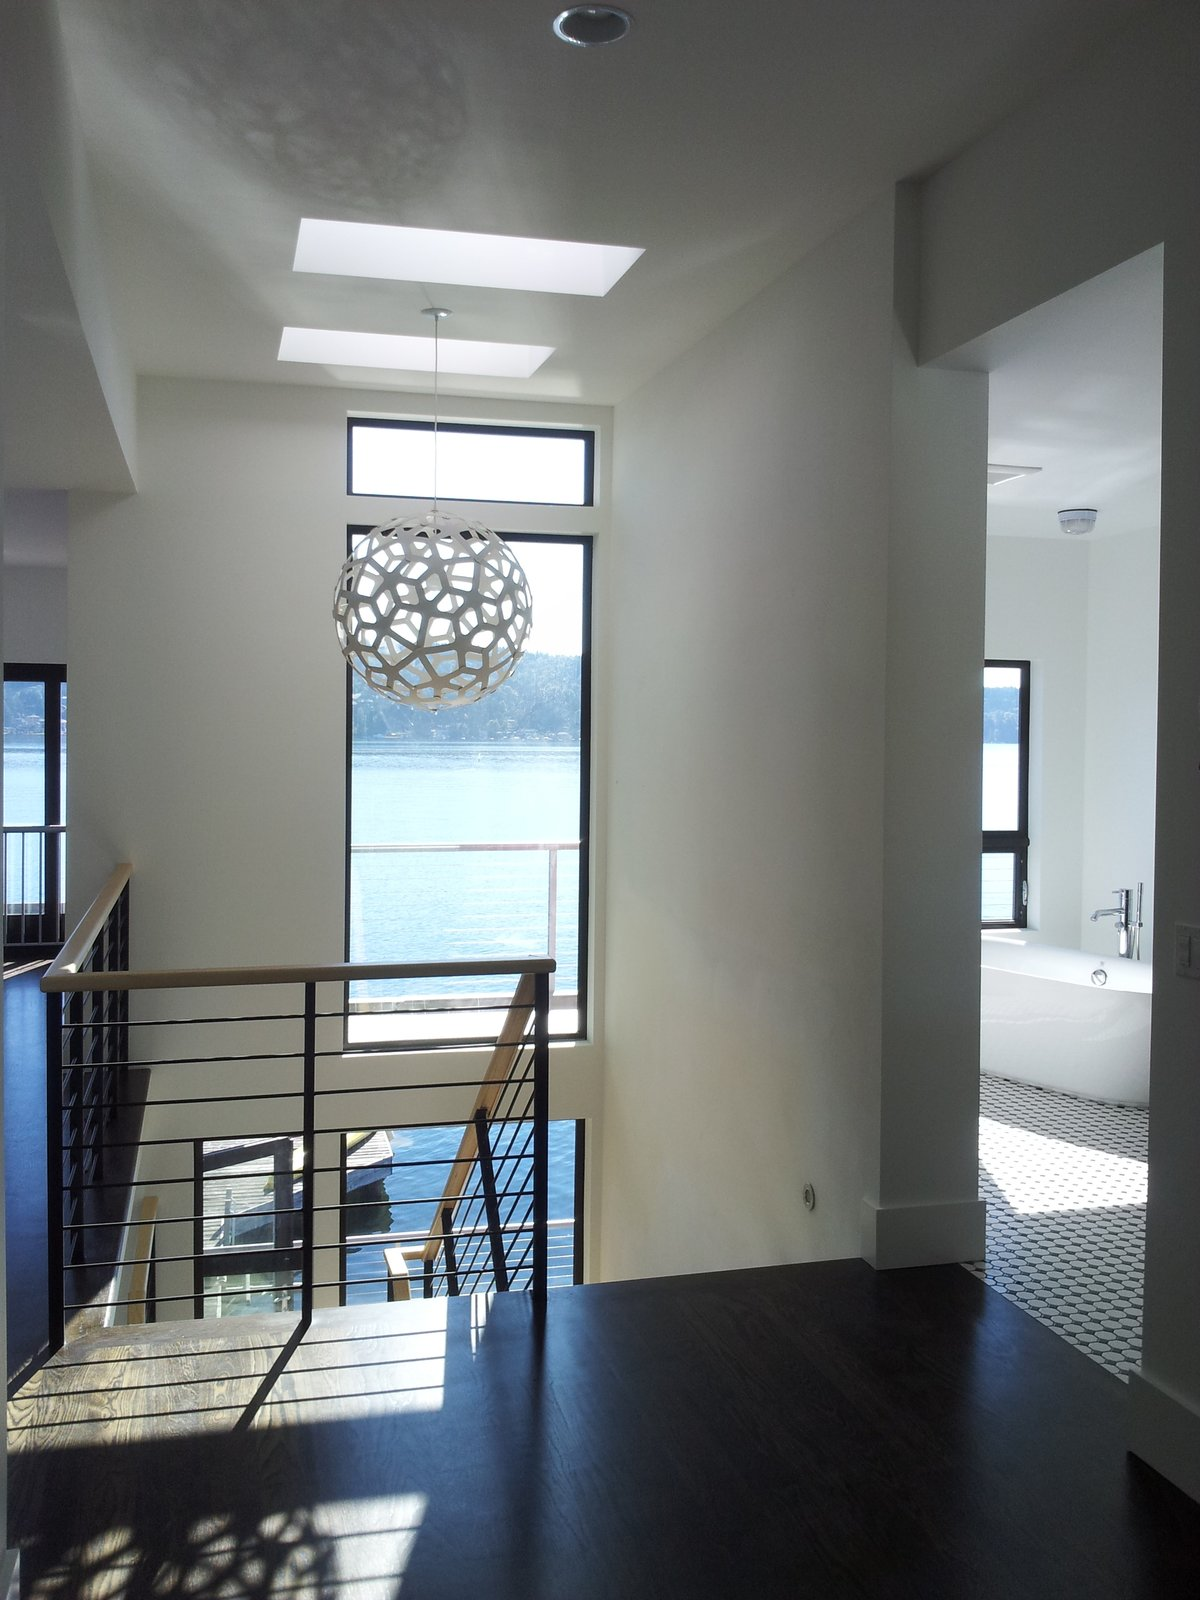 This third story master suite is completely open from stair to master bedroom and master bath.  Lake Washington Home by Atelier Drome